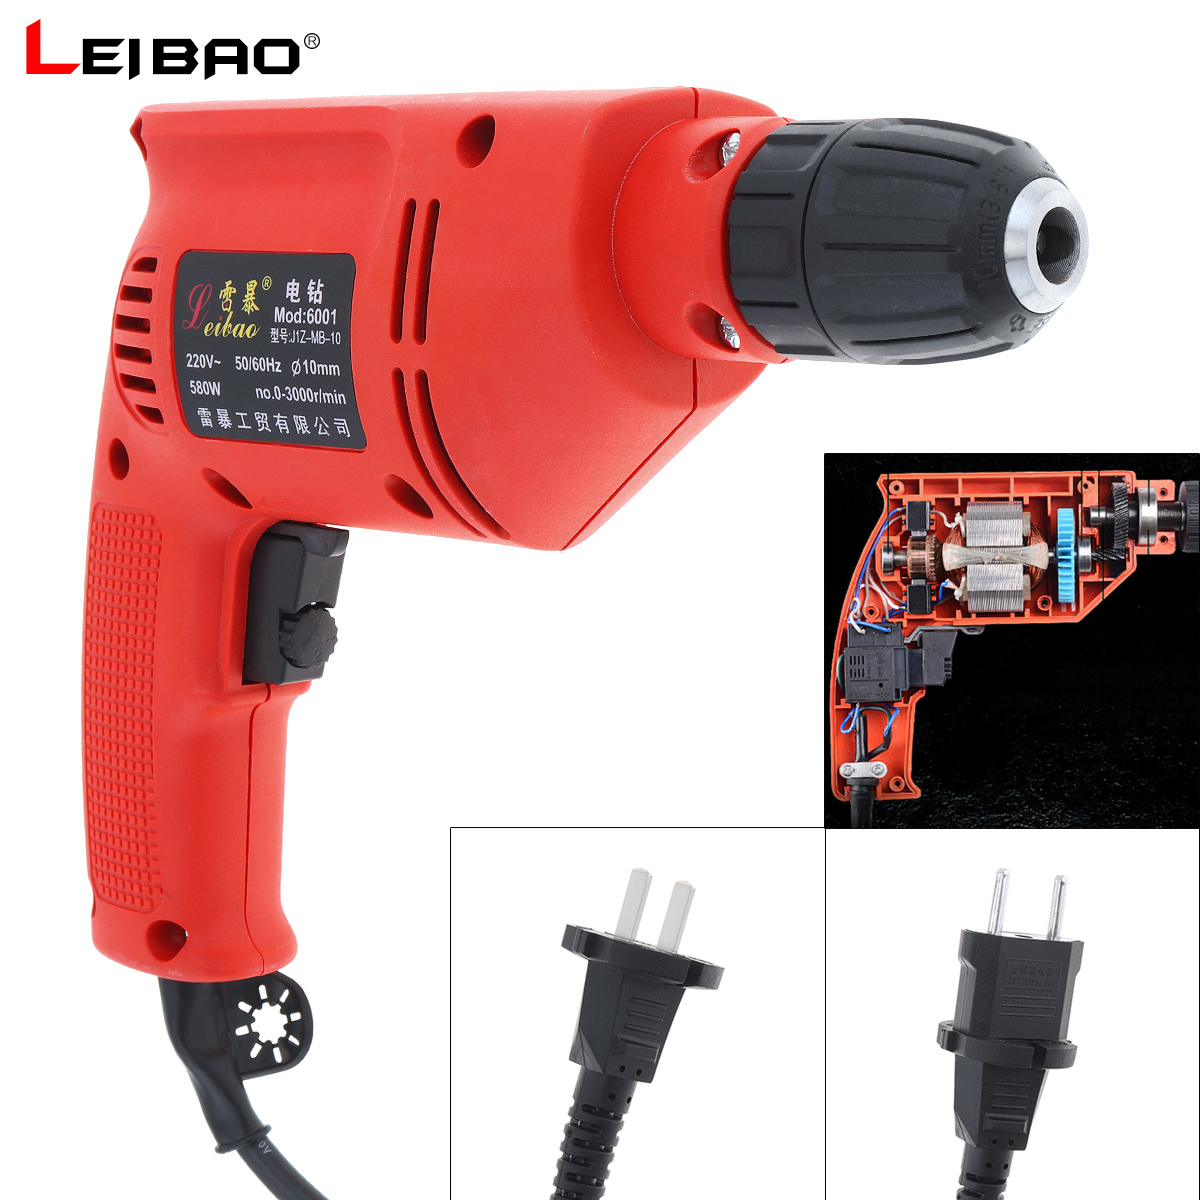 Multifunction Handheld Impact Electric Drill Tool With Rotation Adjustment Switch And 10mm Drill Chuck For Household Maintenance